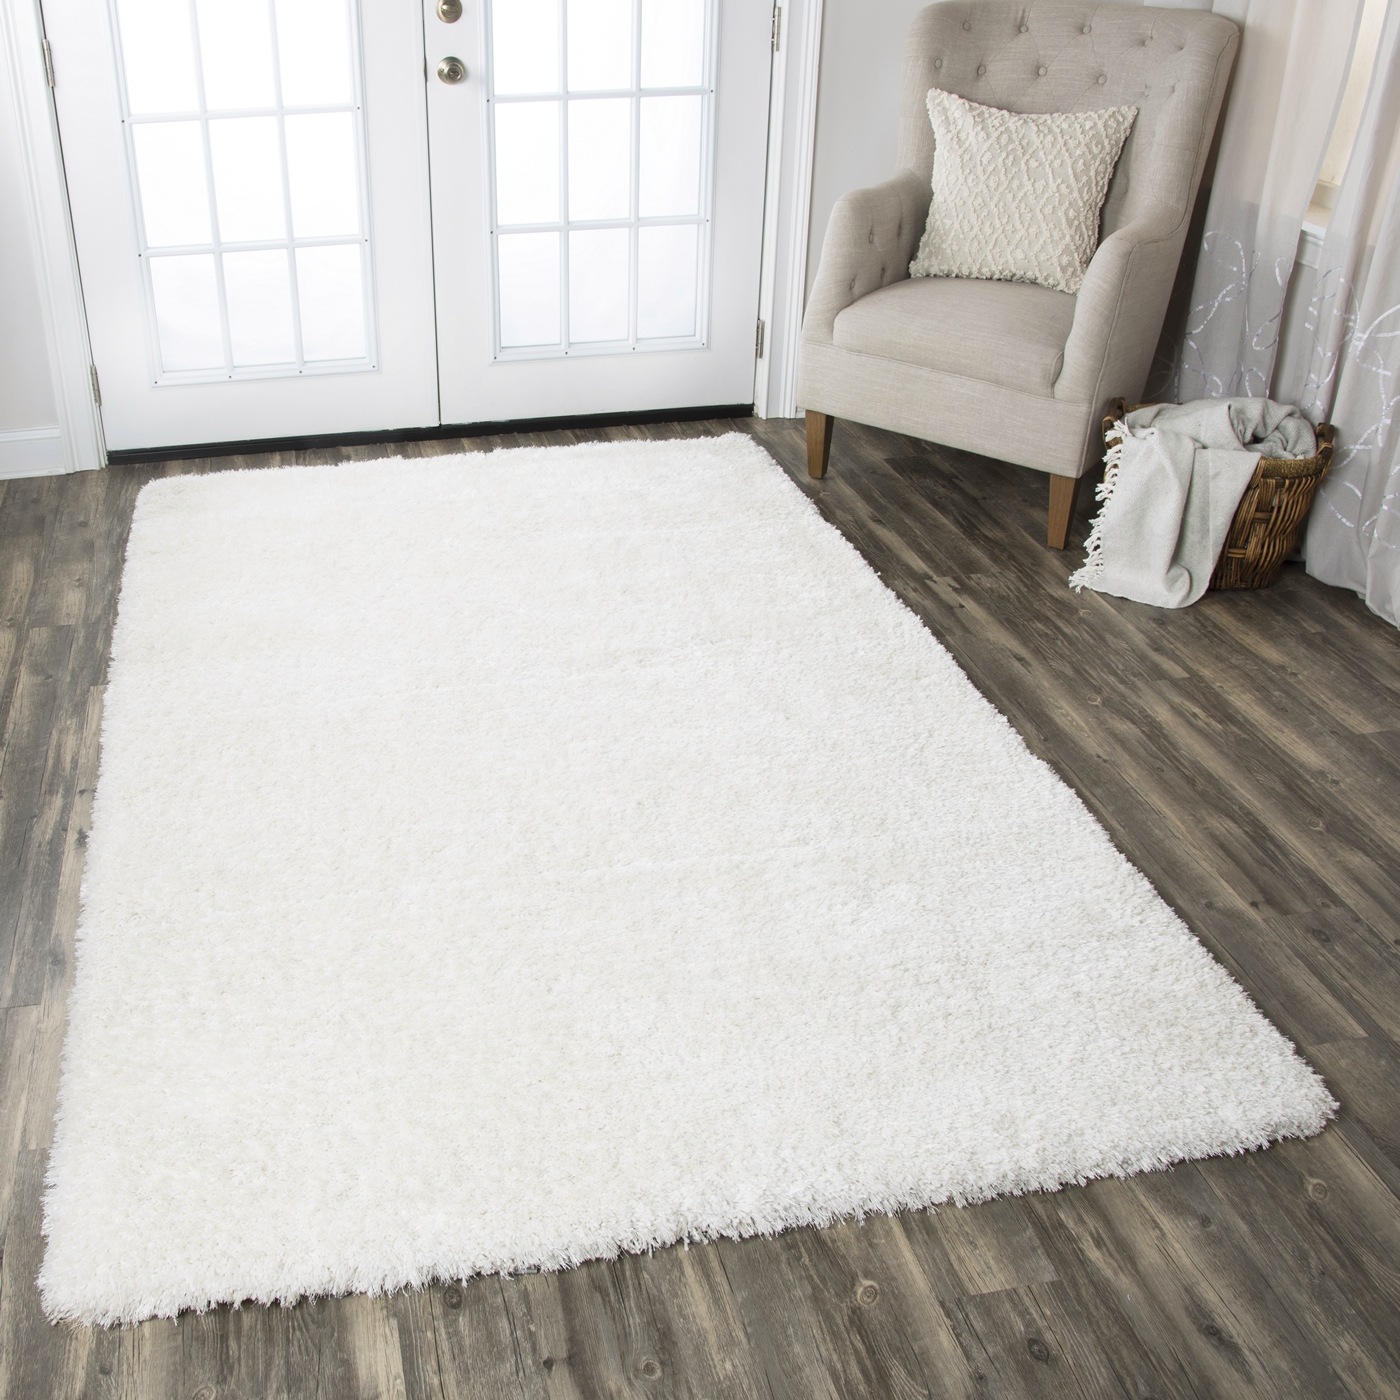 Commons Plush Hand Tufted Area Rug In Solid White 8 X 10